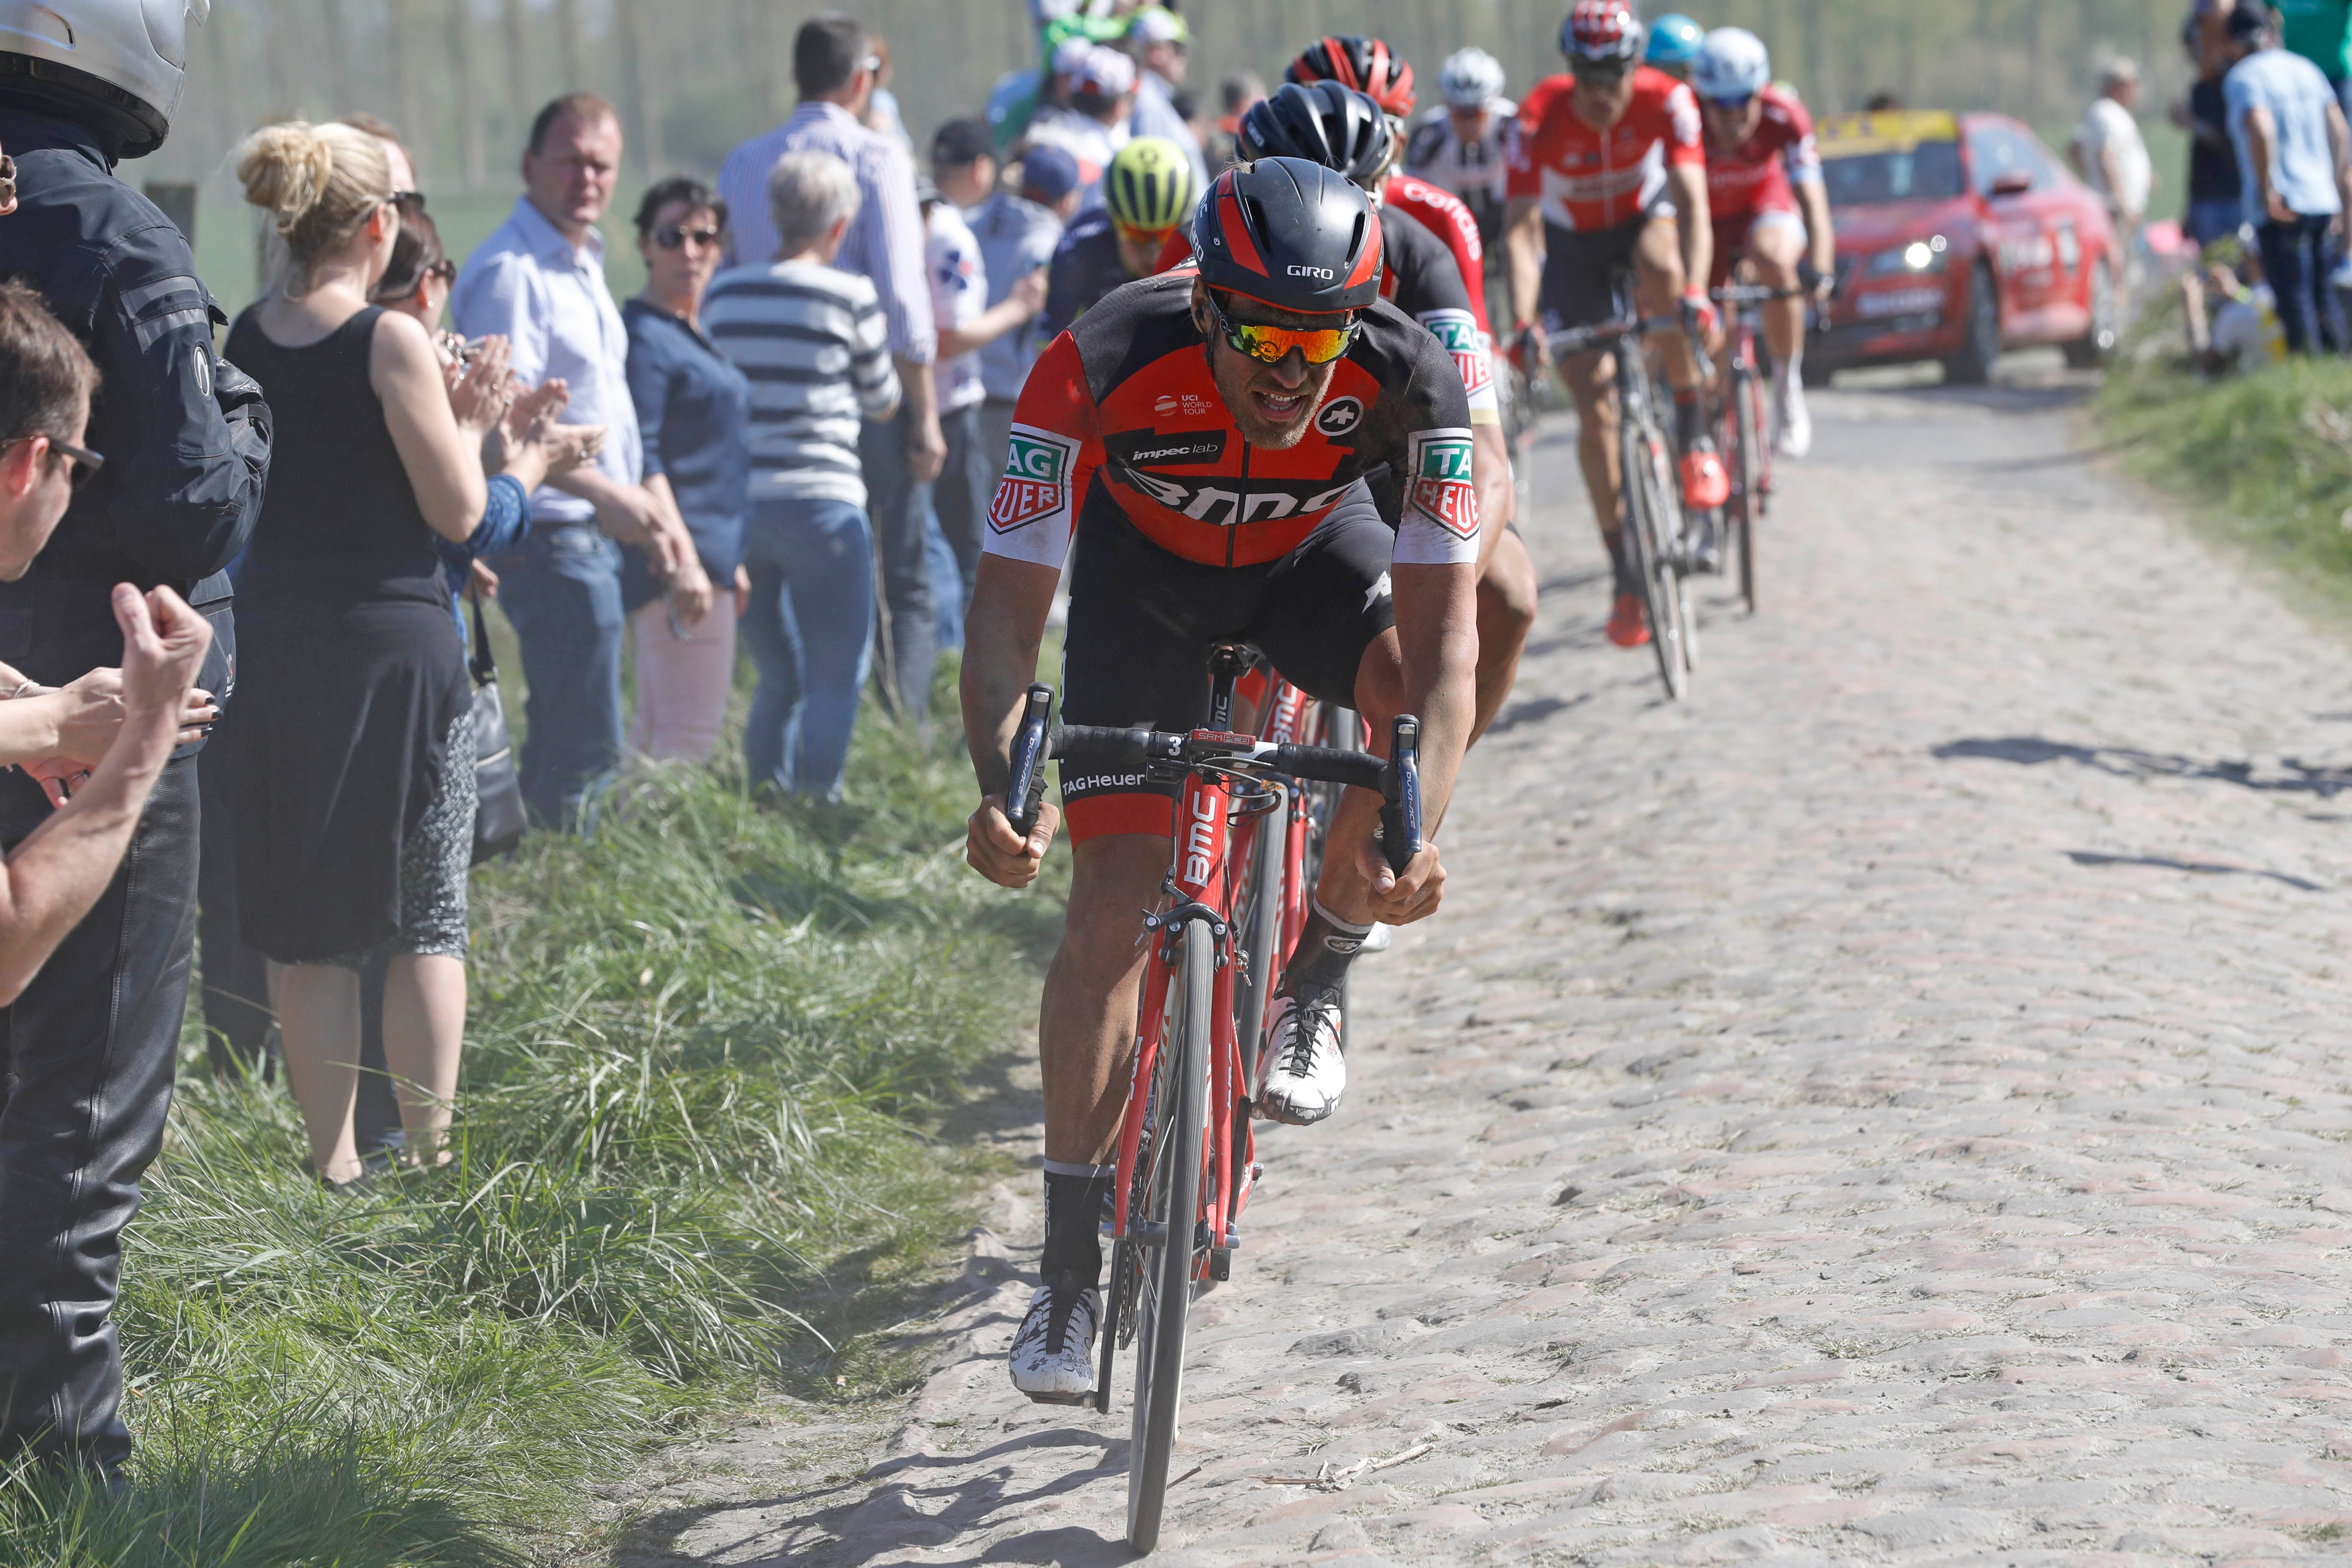 BMC domestique Jumpy Drucker pulled his leader Greg Van Avermaet in a 20km chase after mechanicals and bike changes put the eventual winner off the back with 95km to go.